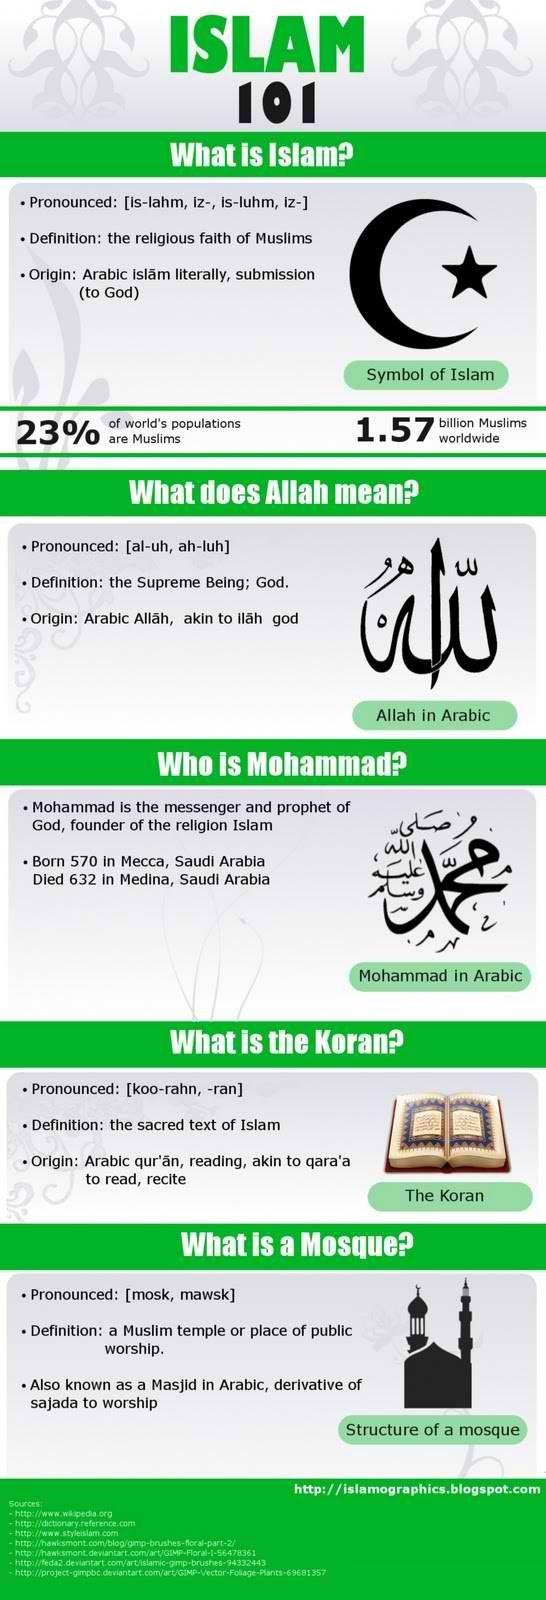 Islam 101 Definition of basic words & knowledge in Islam Religion The religion of peace